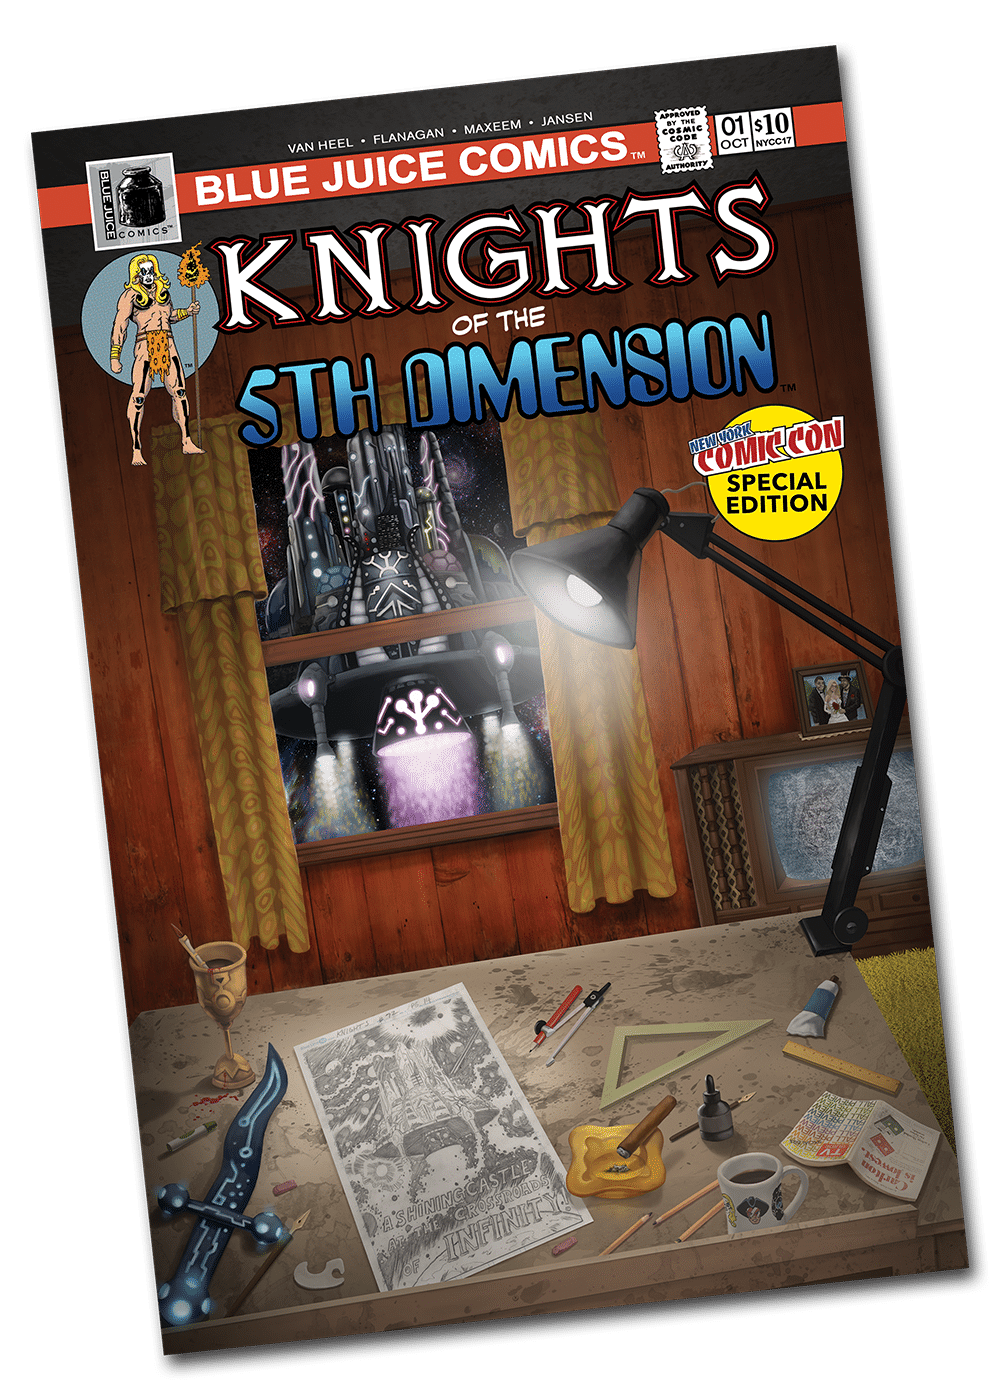 Knights of the 5th Dimension - New York Comic Con Cover 2017